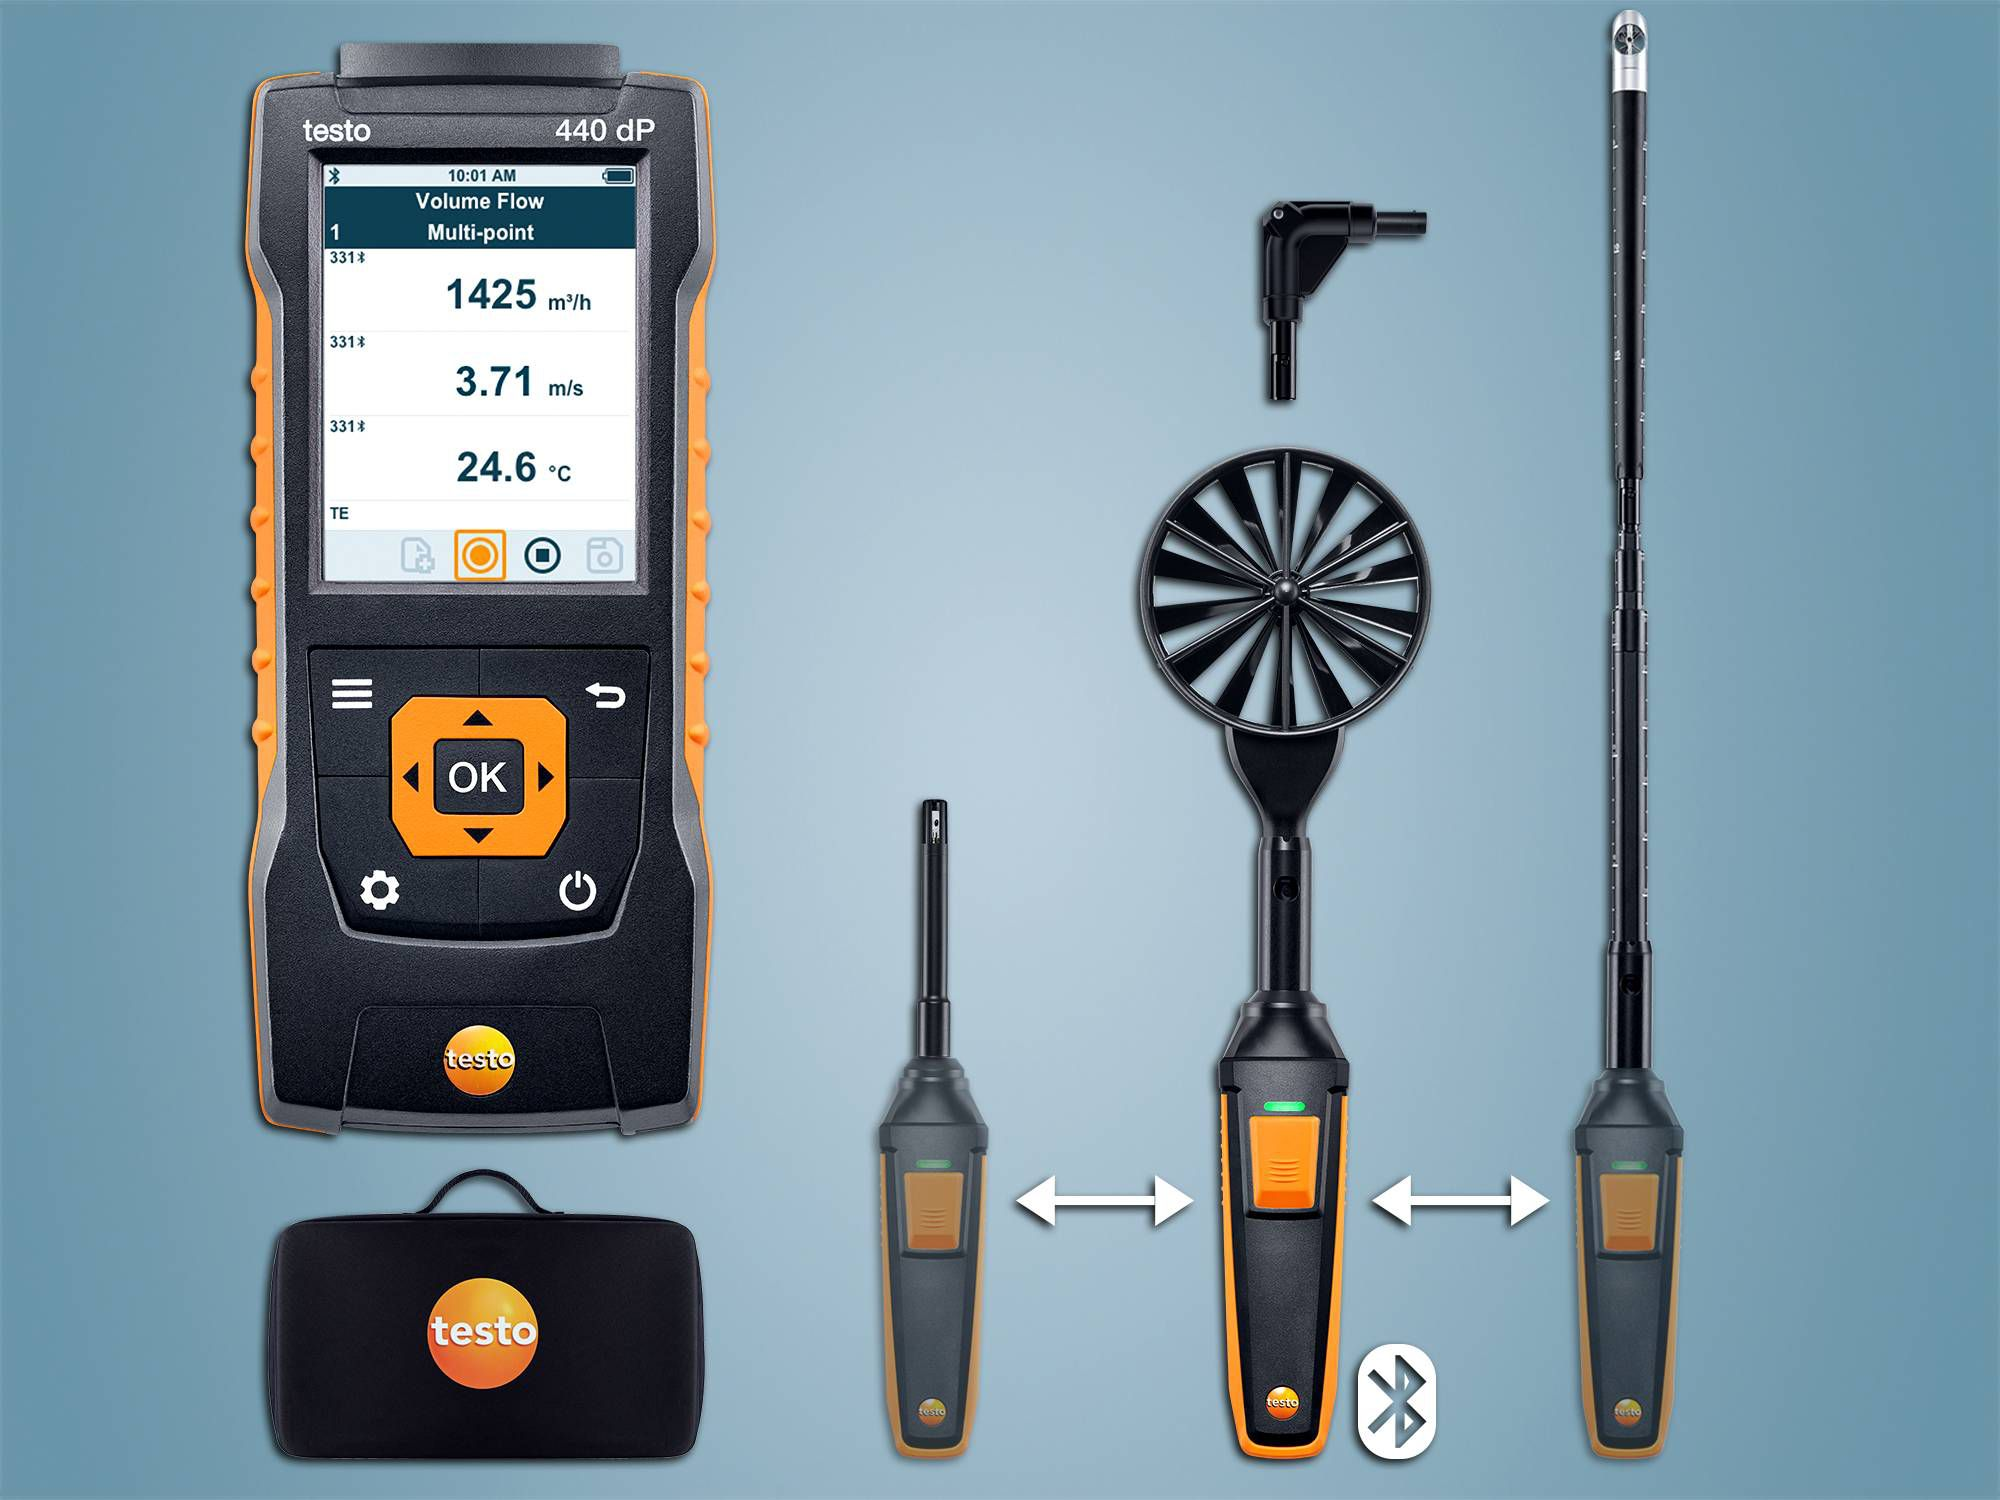 testo 440 dP Stromings-CombiSet 2 met Bluetooth